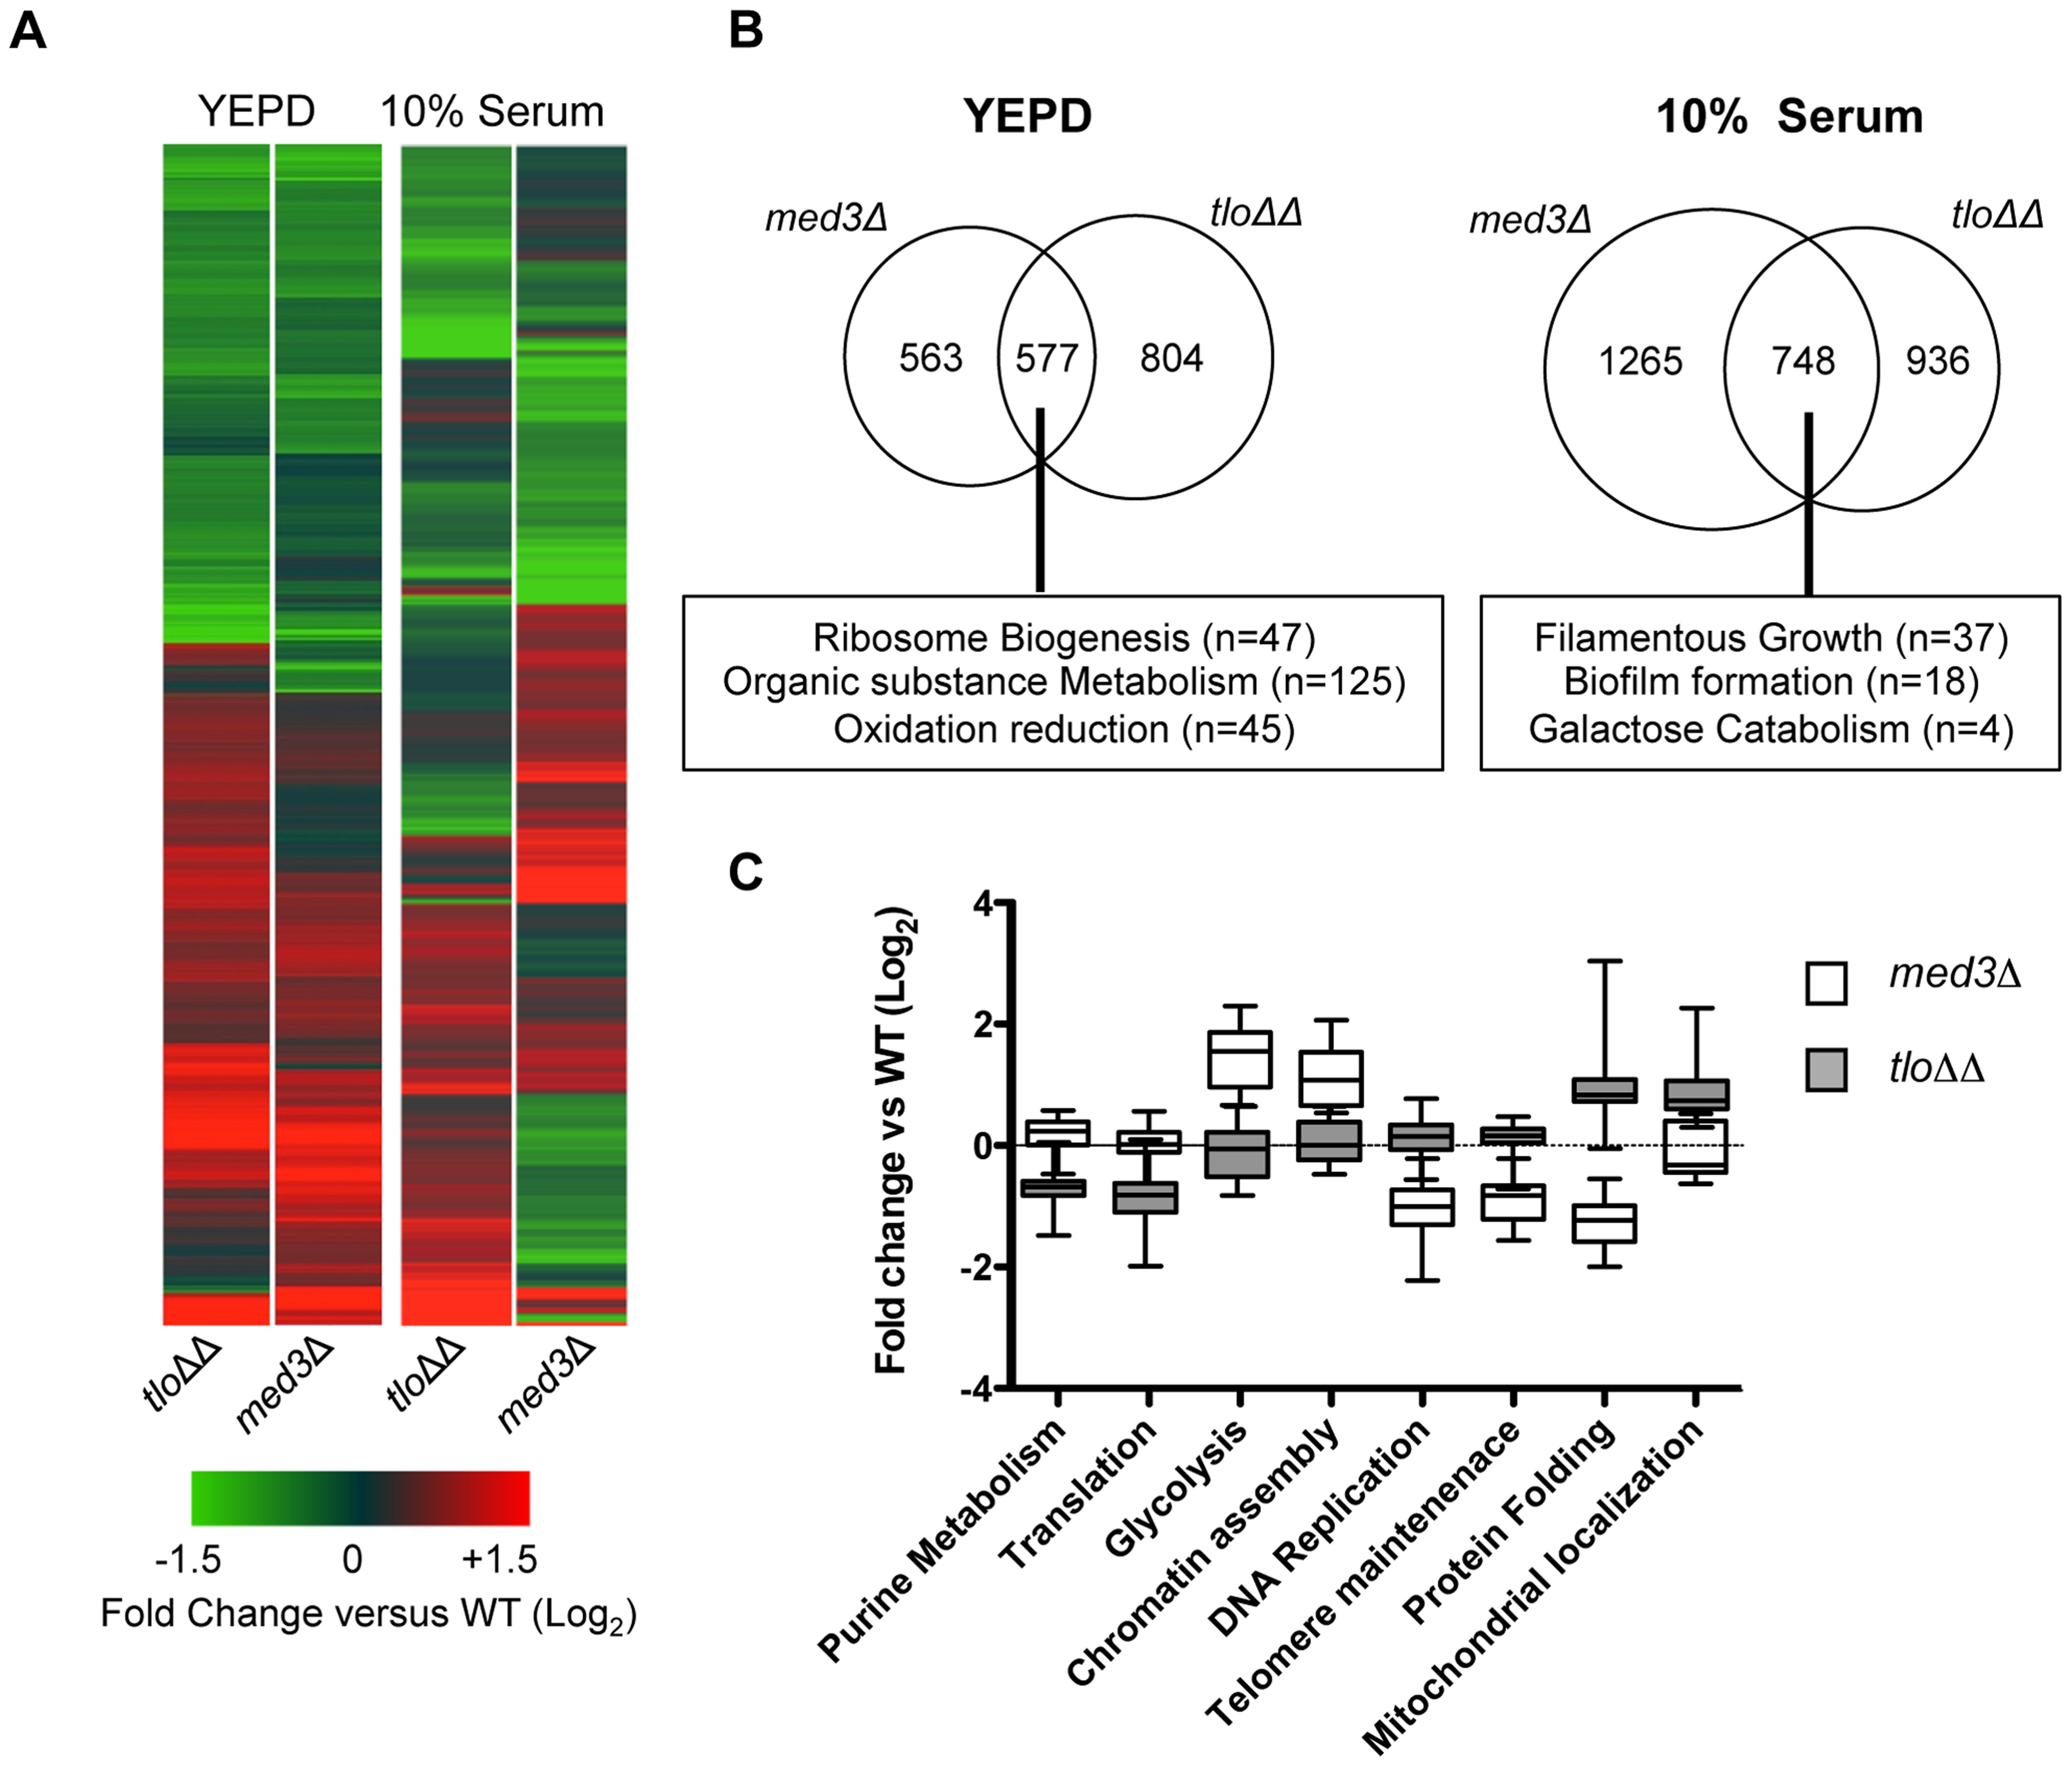 Microarray gene expression profiling of the <i>med3</i>Δ mutant in YEPD and 10% (v/v) serum.